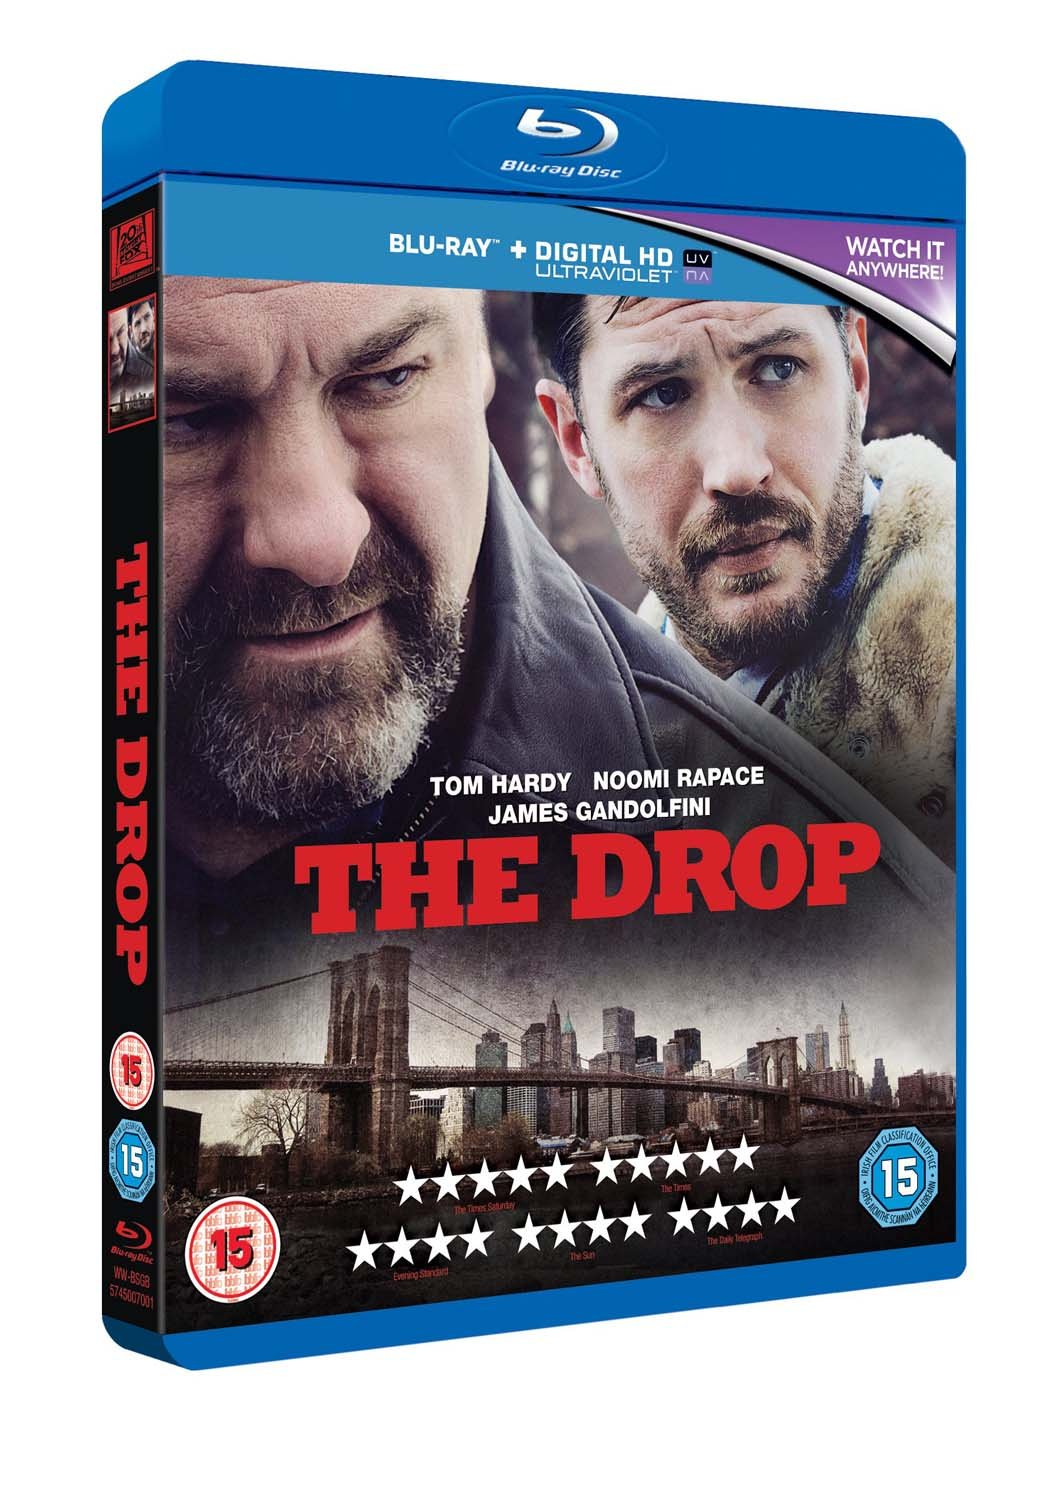 the drop [Blu-ray] [2017]